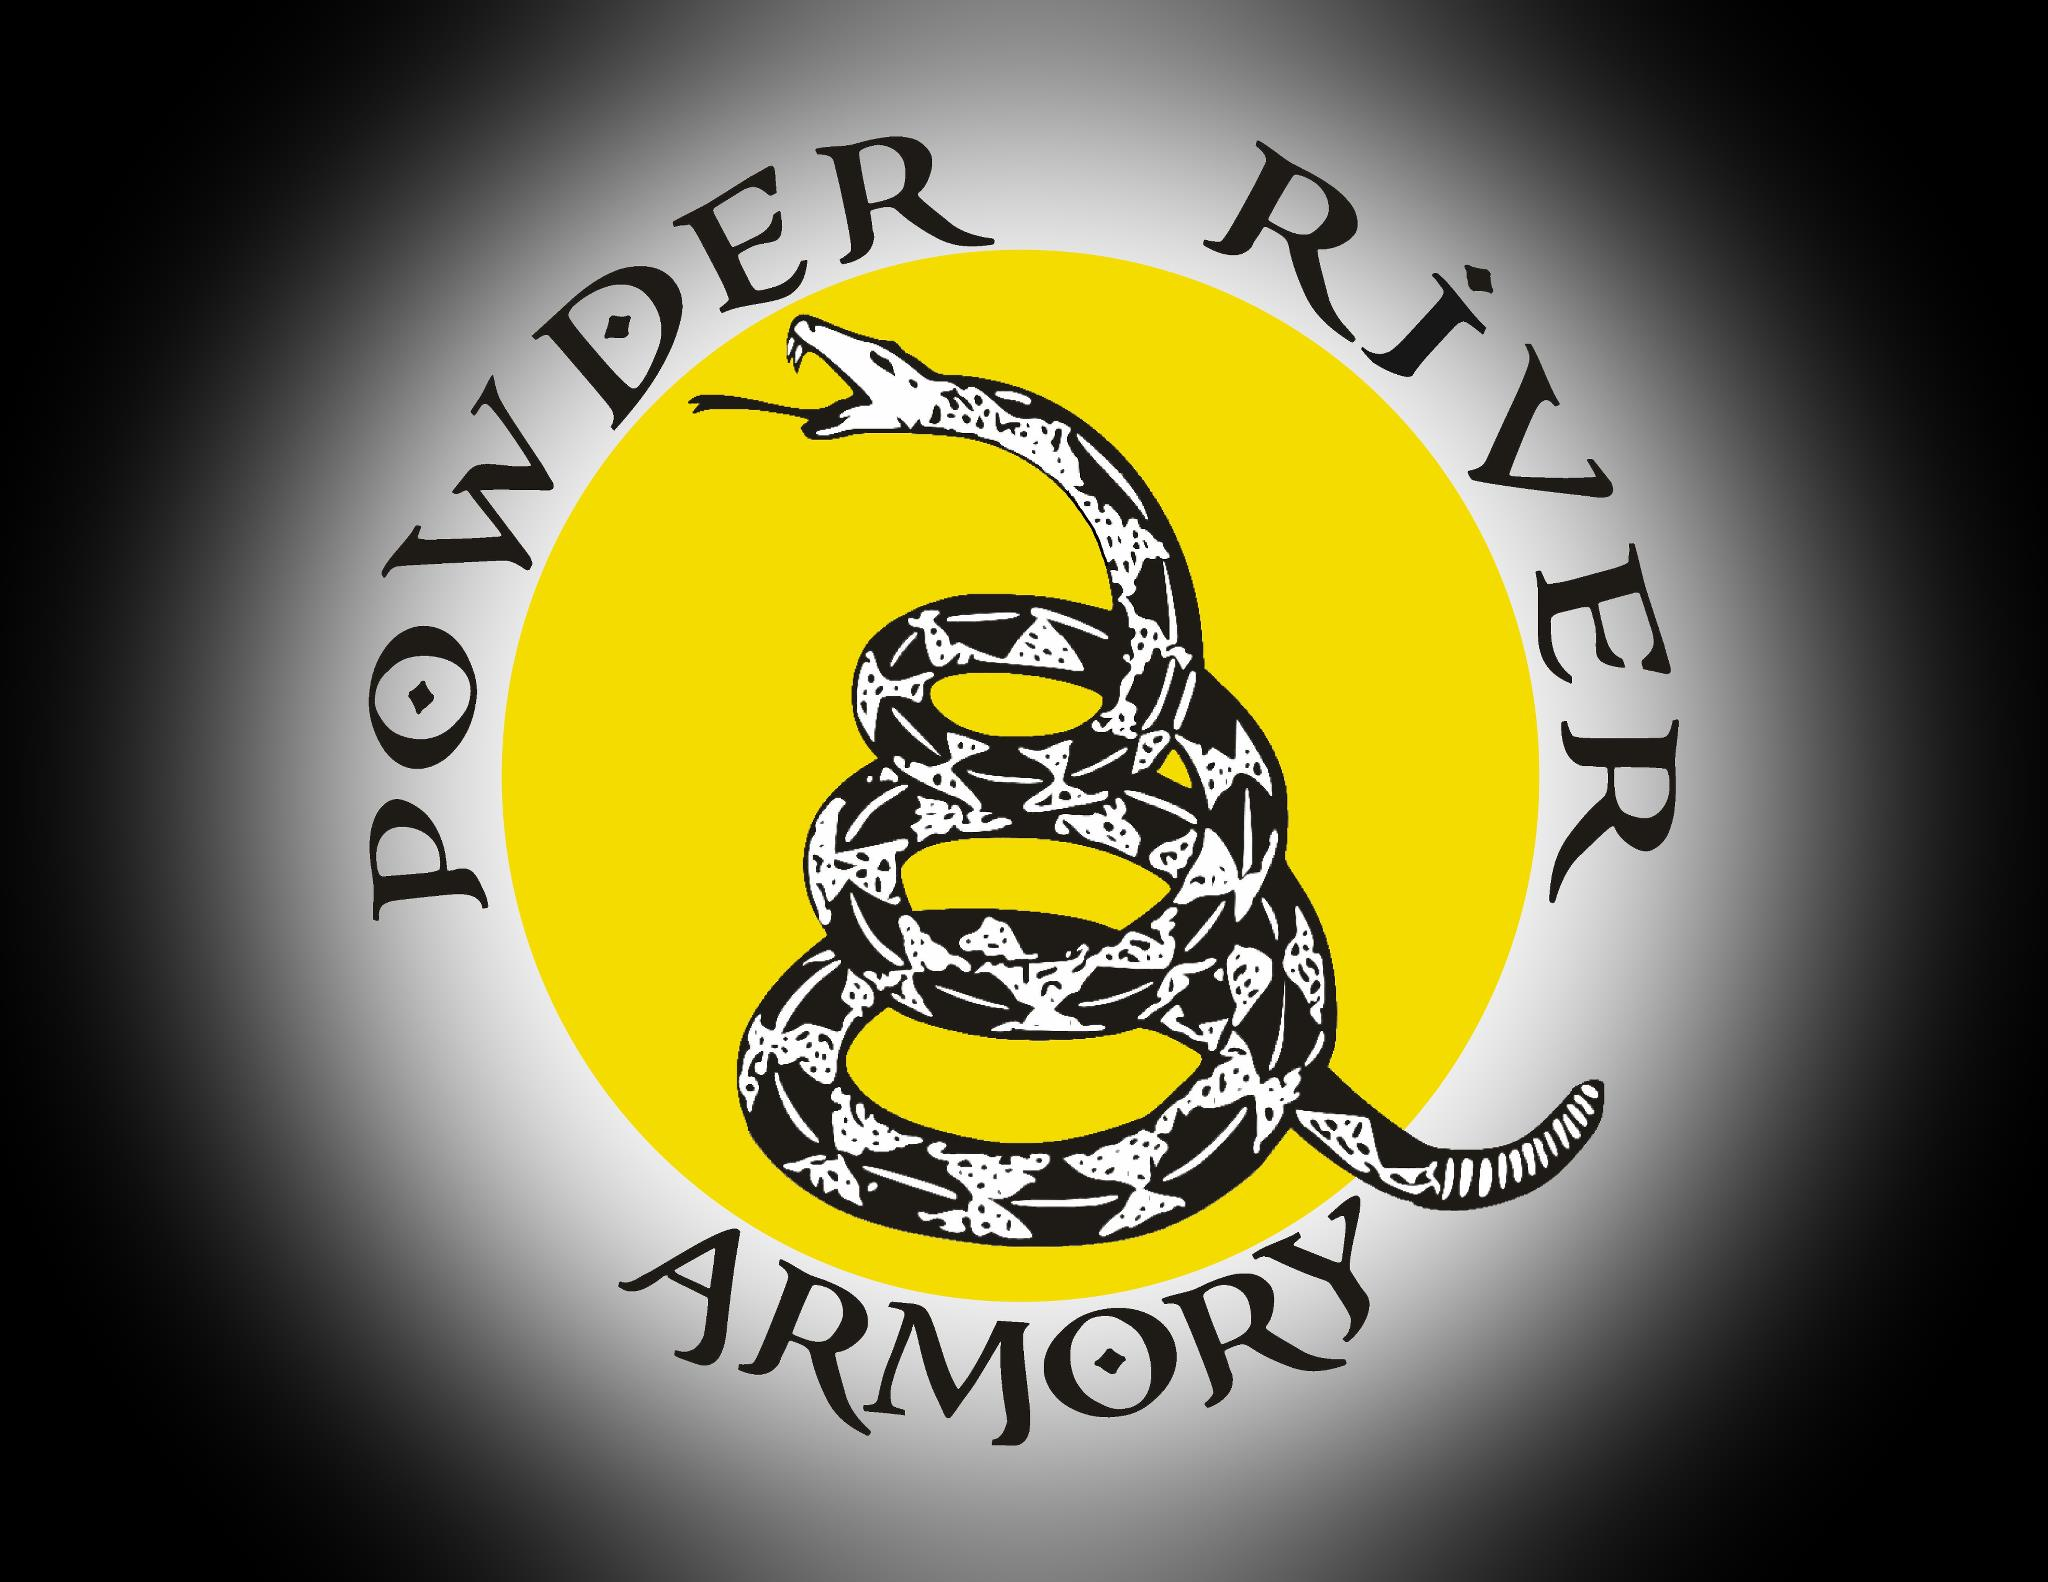 Powder River Armory